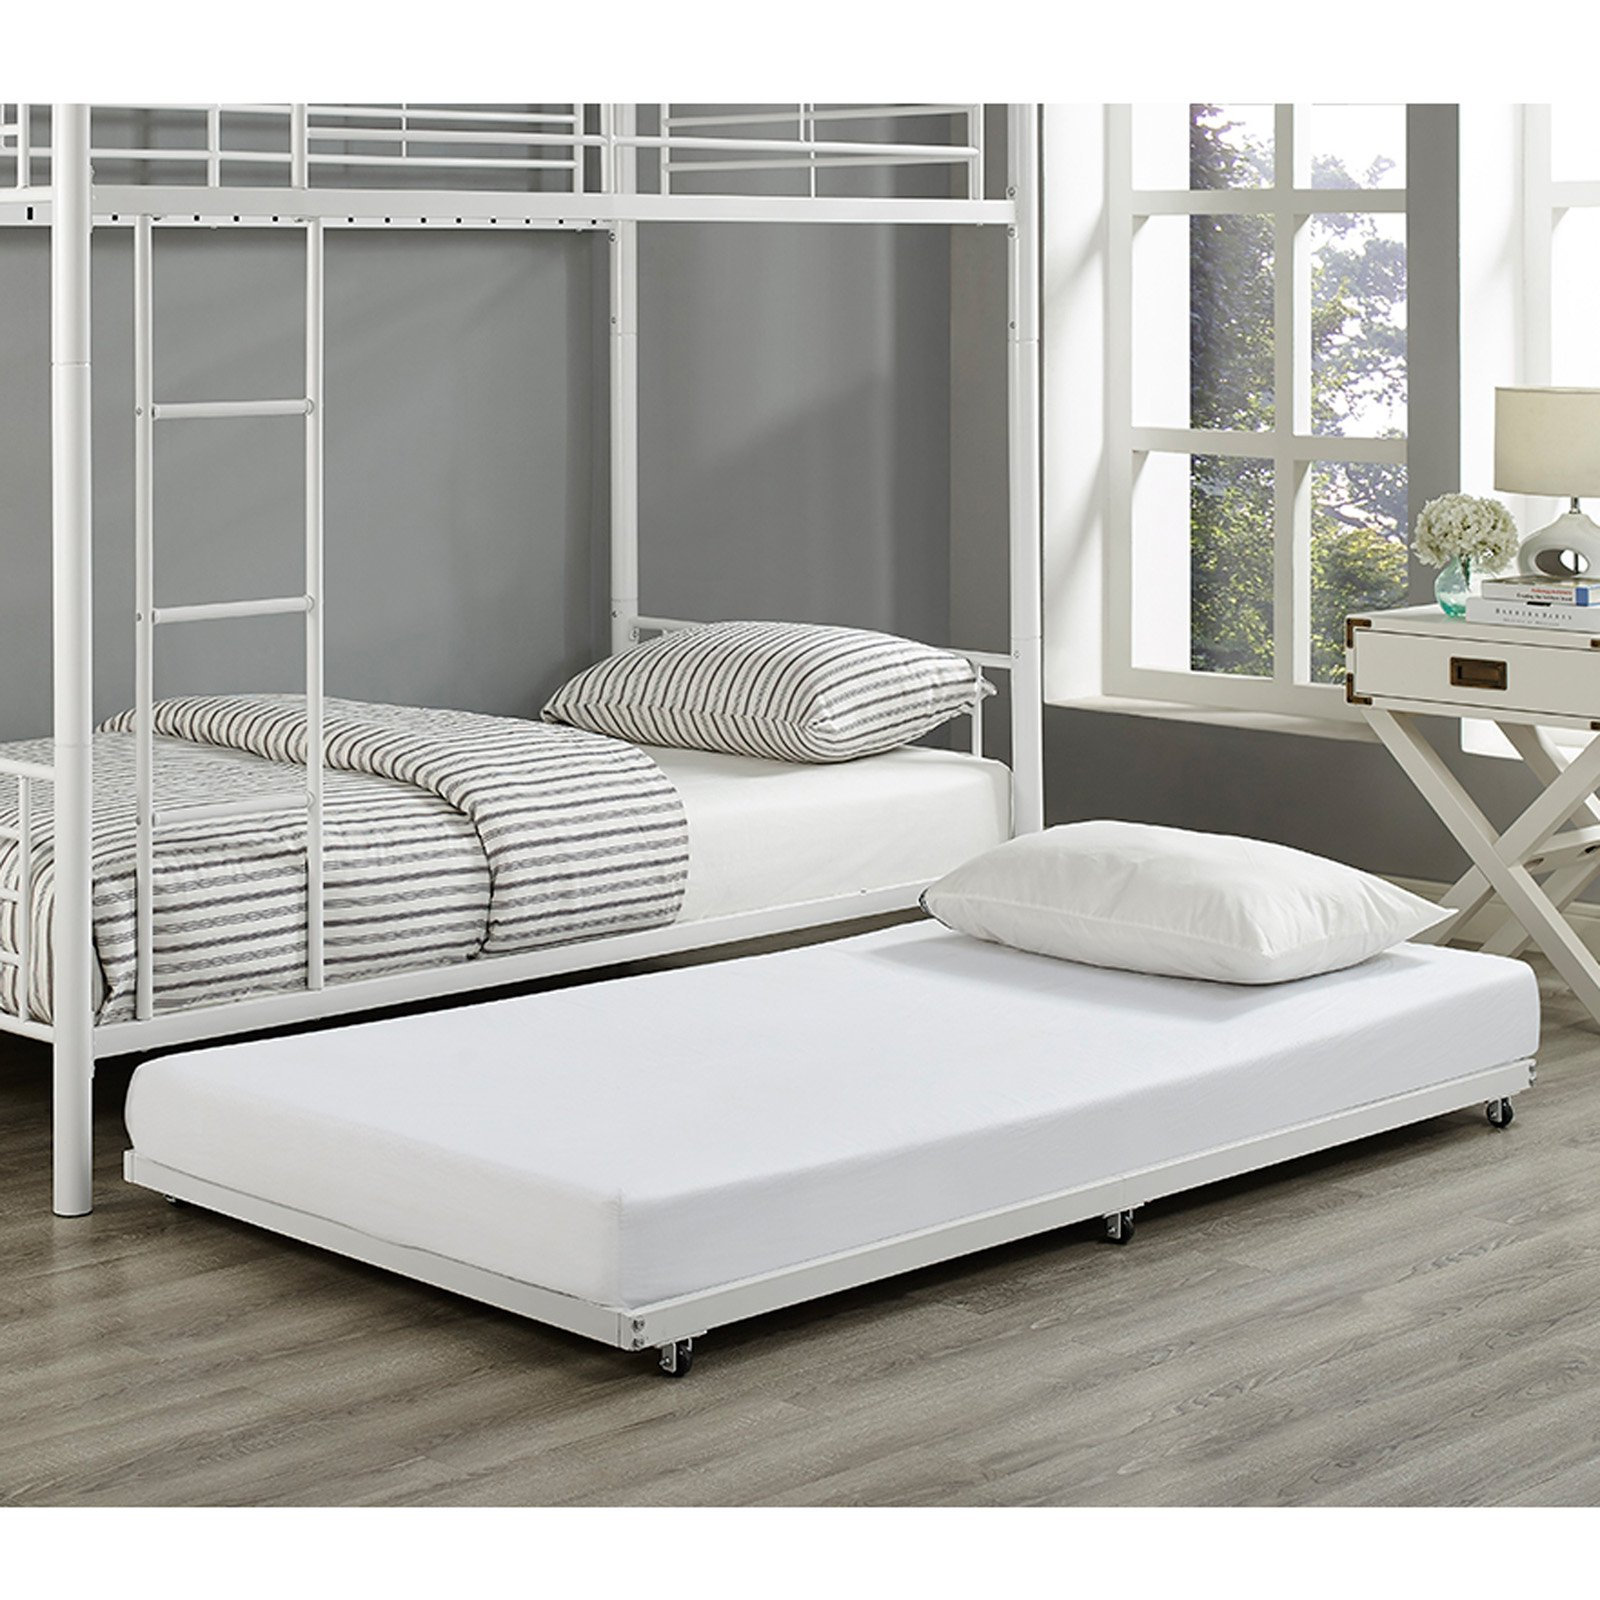 Walker Edison White Twin Roll-Out Trundle Bed Frame - Walmart.com